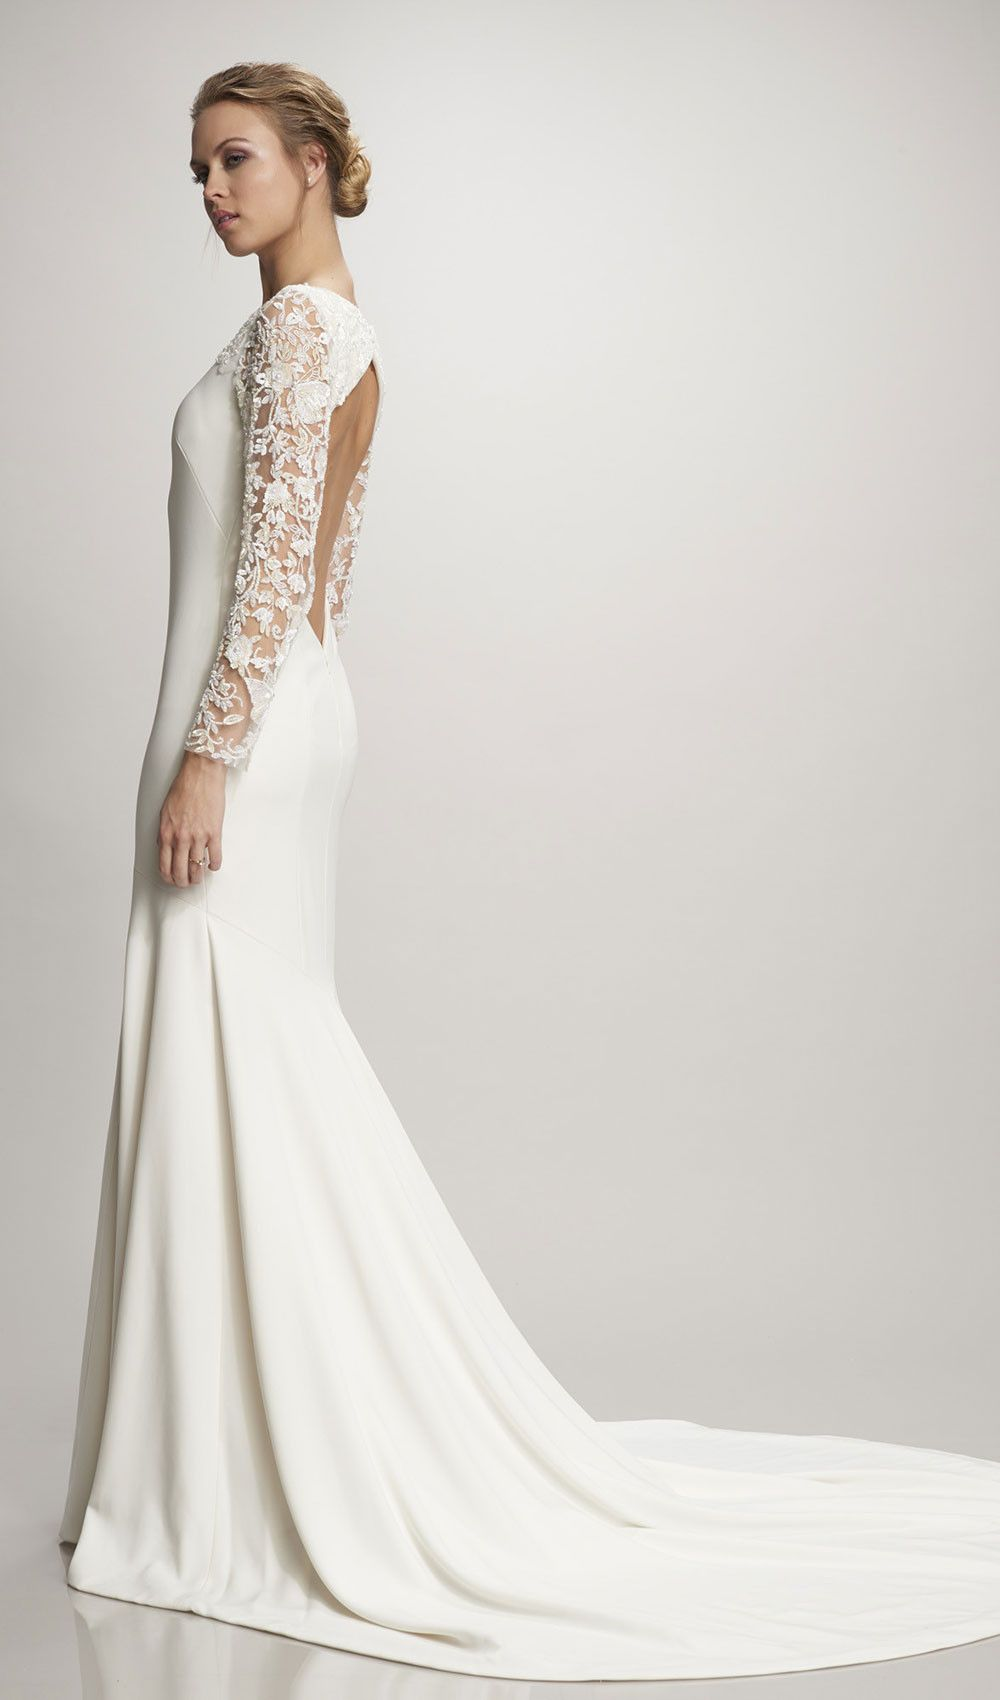 A great fall or winter wedding dress with long sleeves from theia